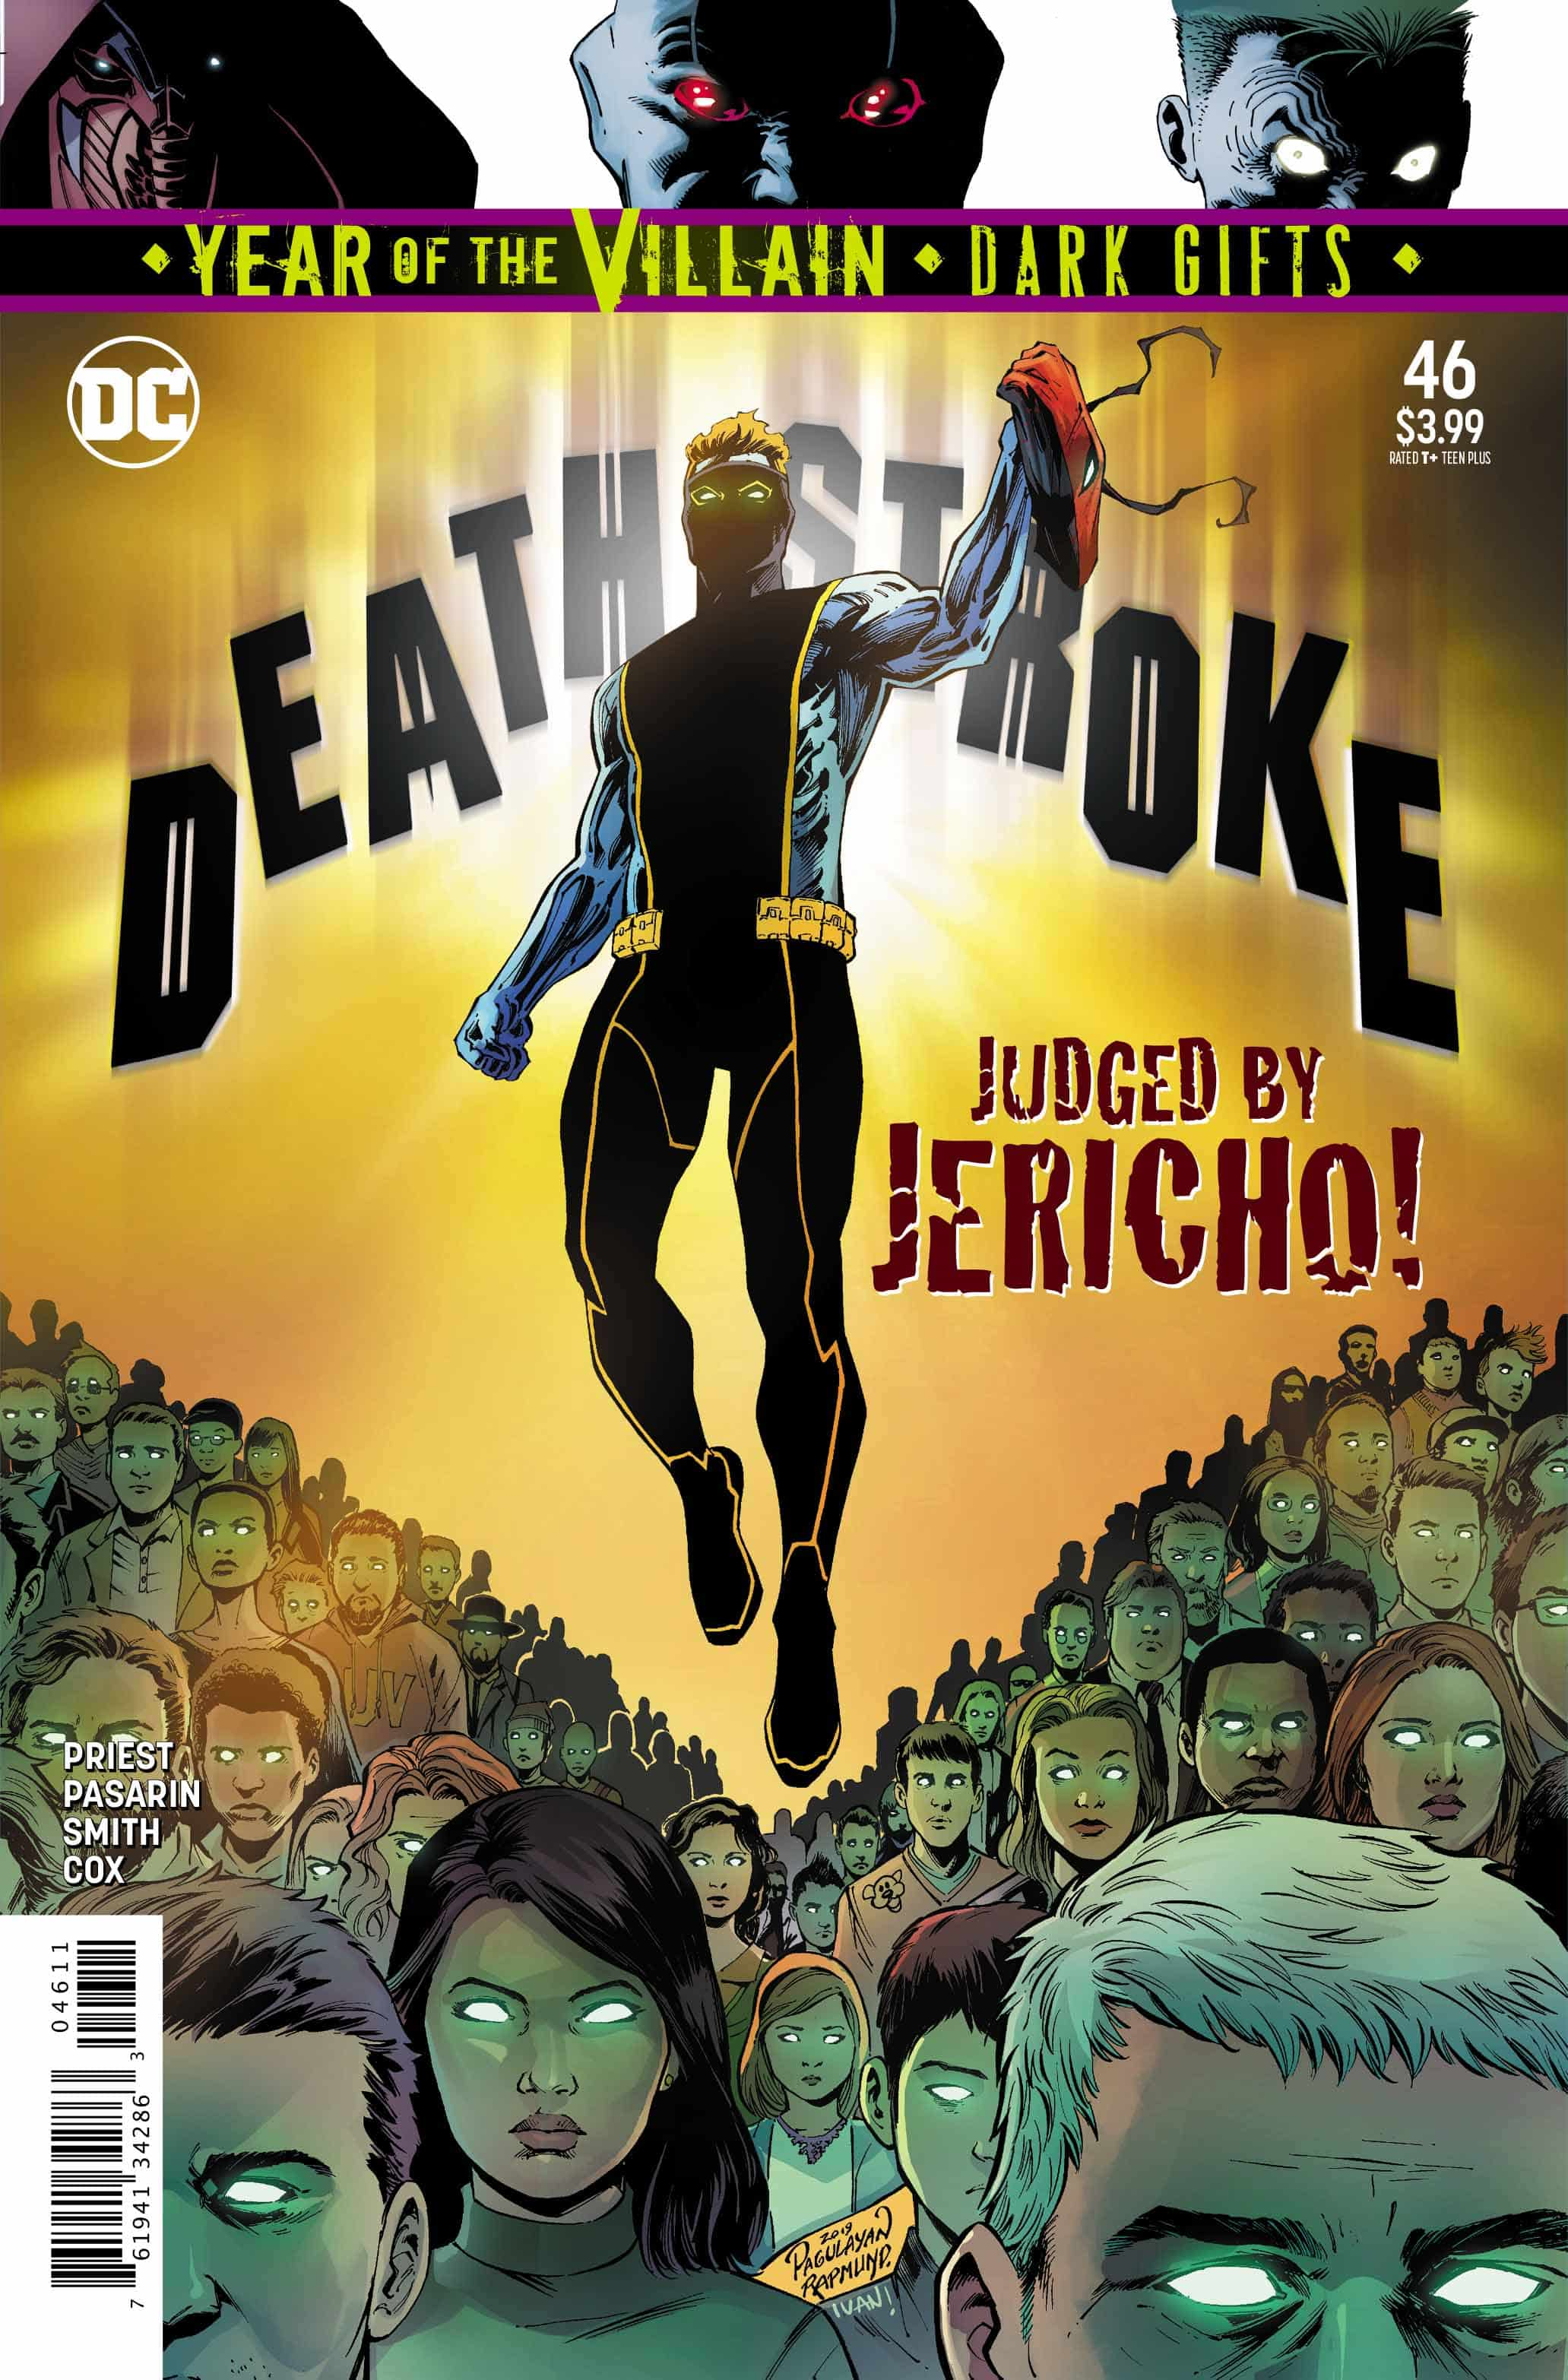 Deathstroke #46 Review